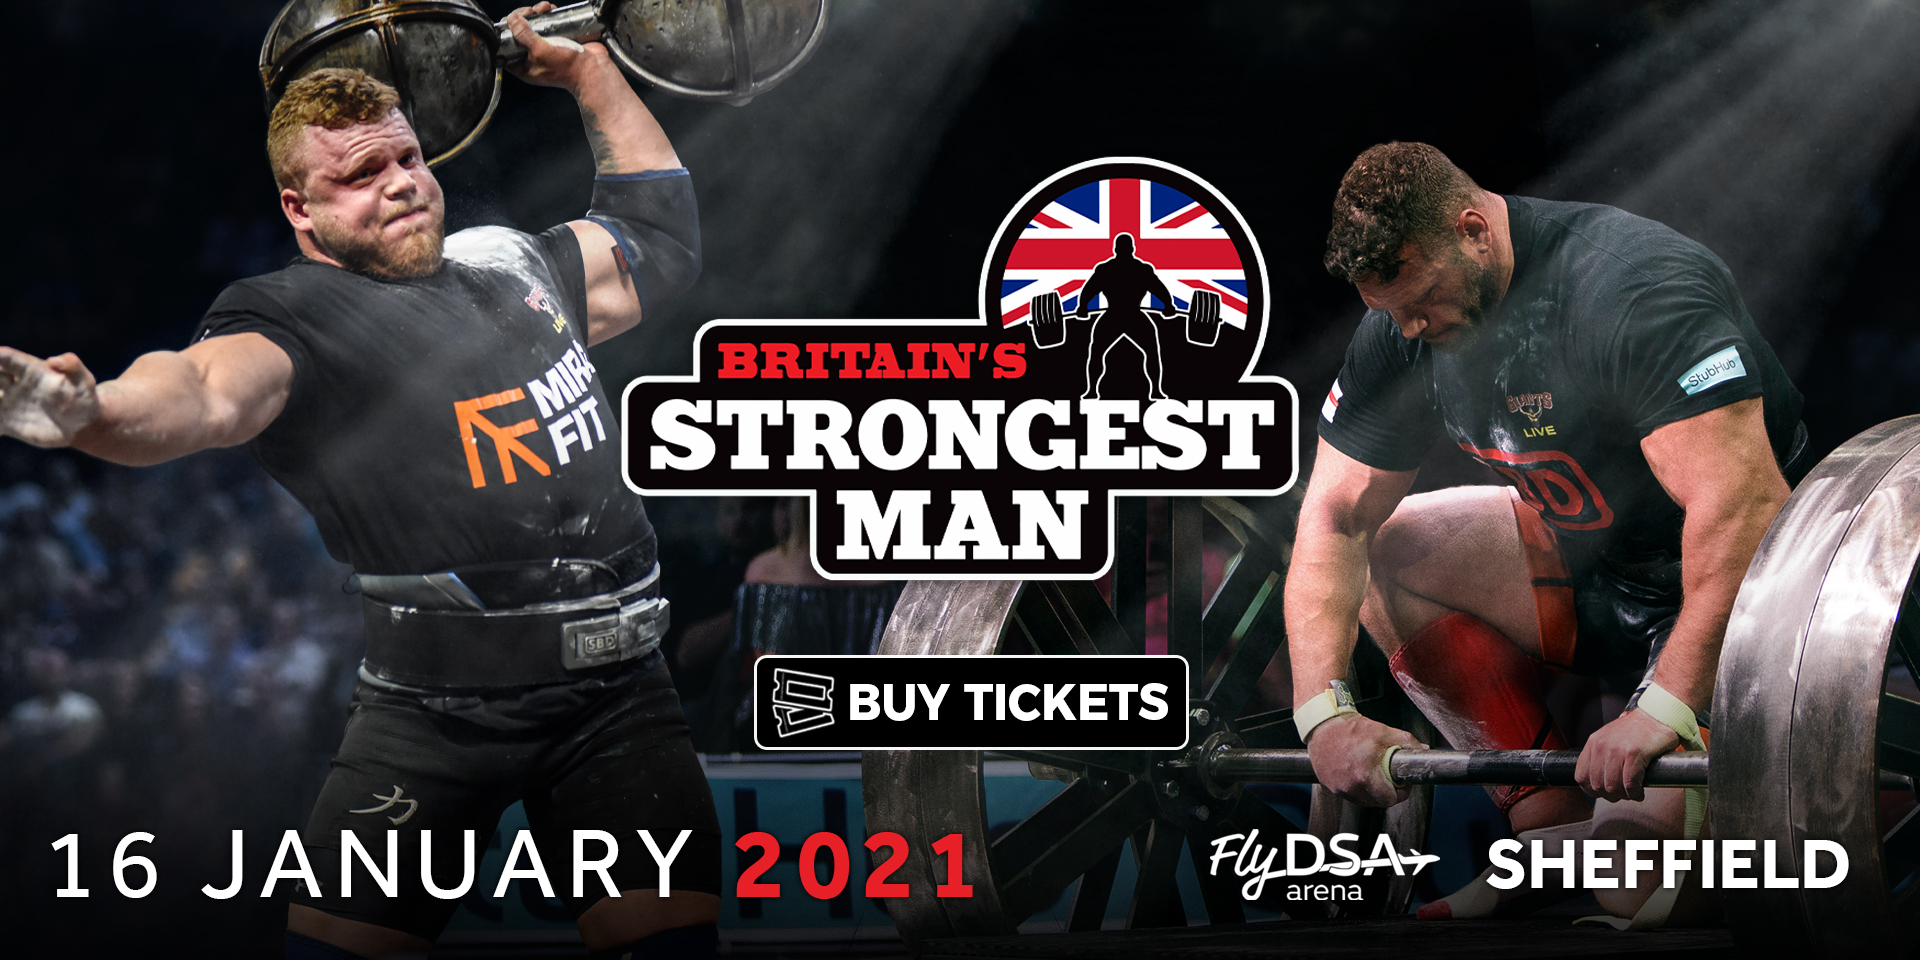 Britain's Strongest Man in Sheffield 2021! Who will  be the strongest man in Britain?